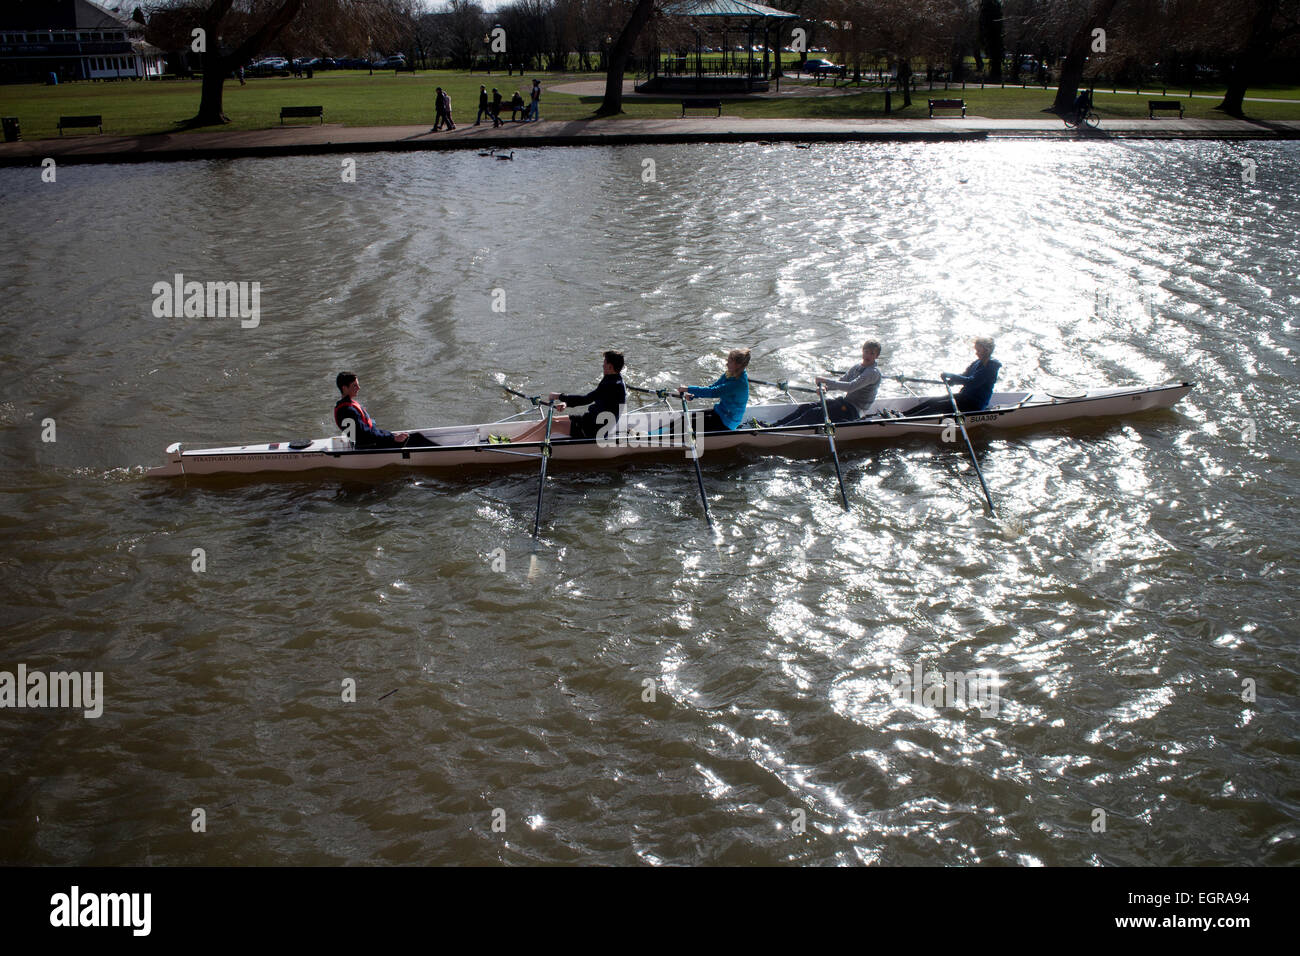 Coxed four rowing on the River Avon, Stratford-upon-Avon, UK - Stock Image